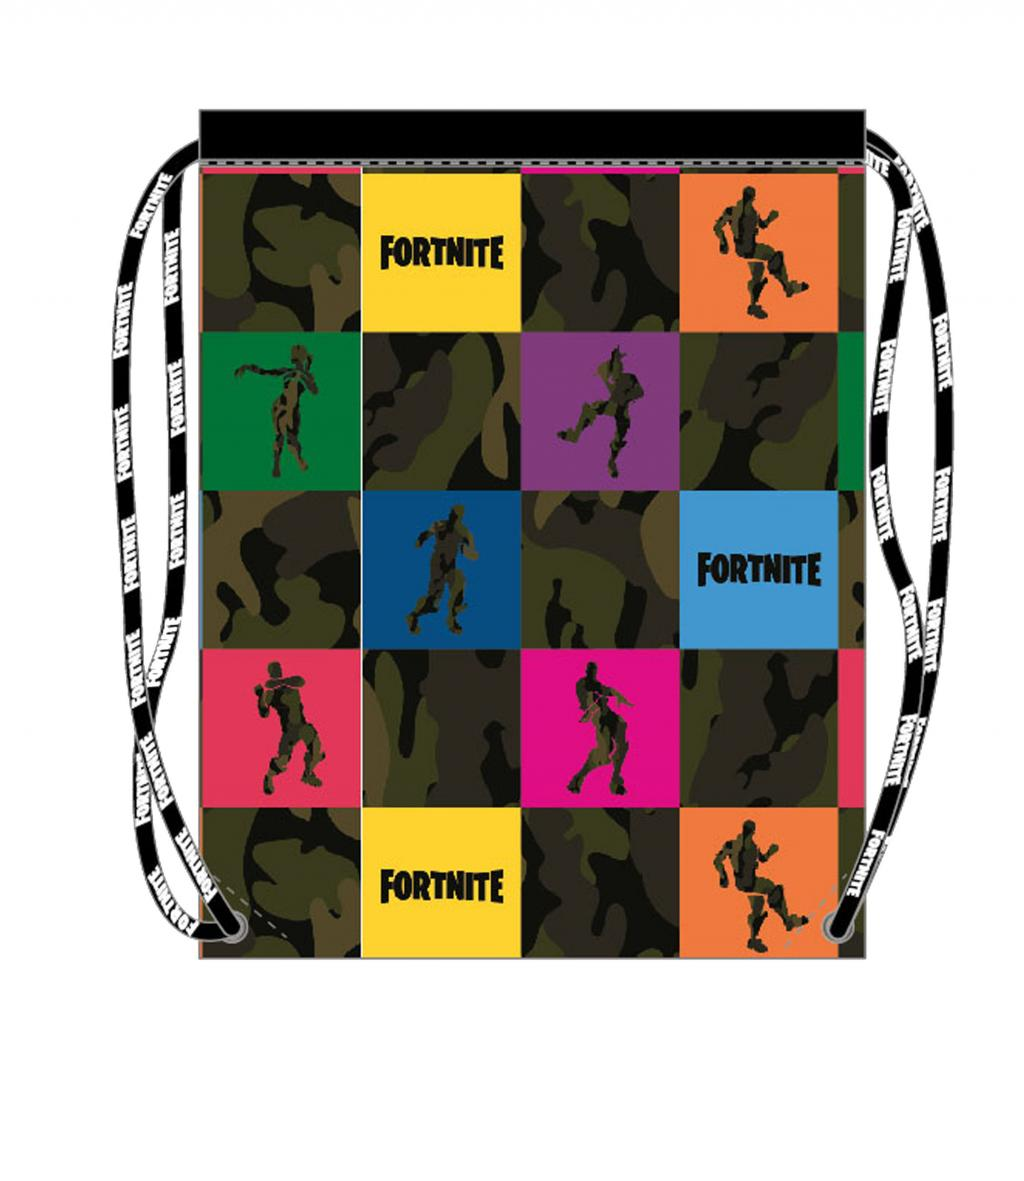 FORTNITE - Gymbag 32x41 - Square Color